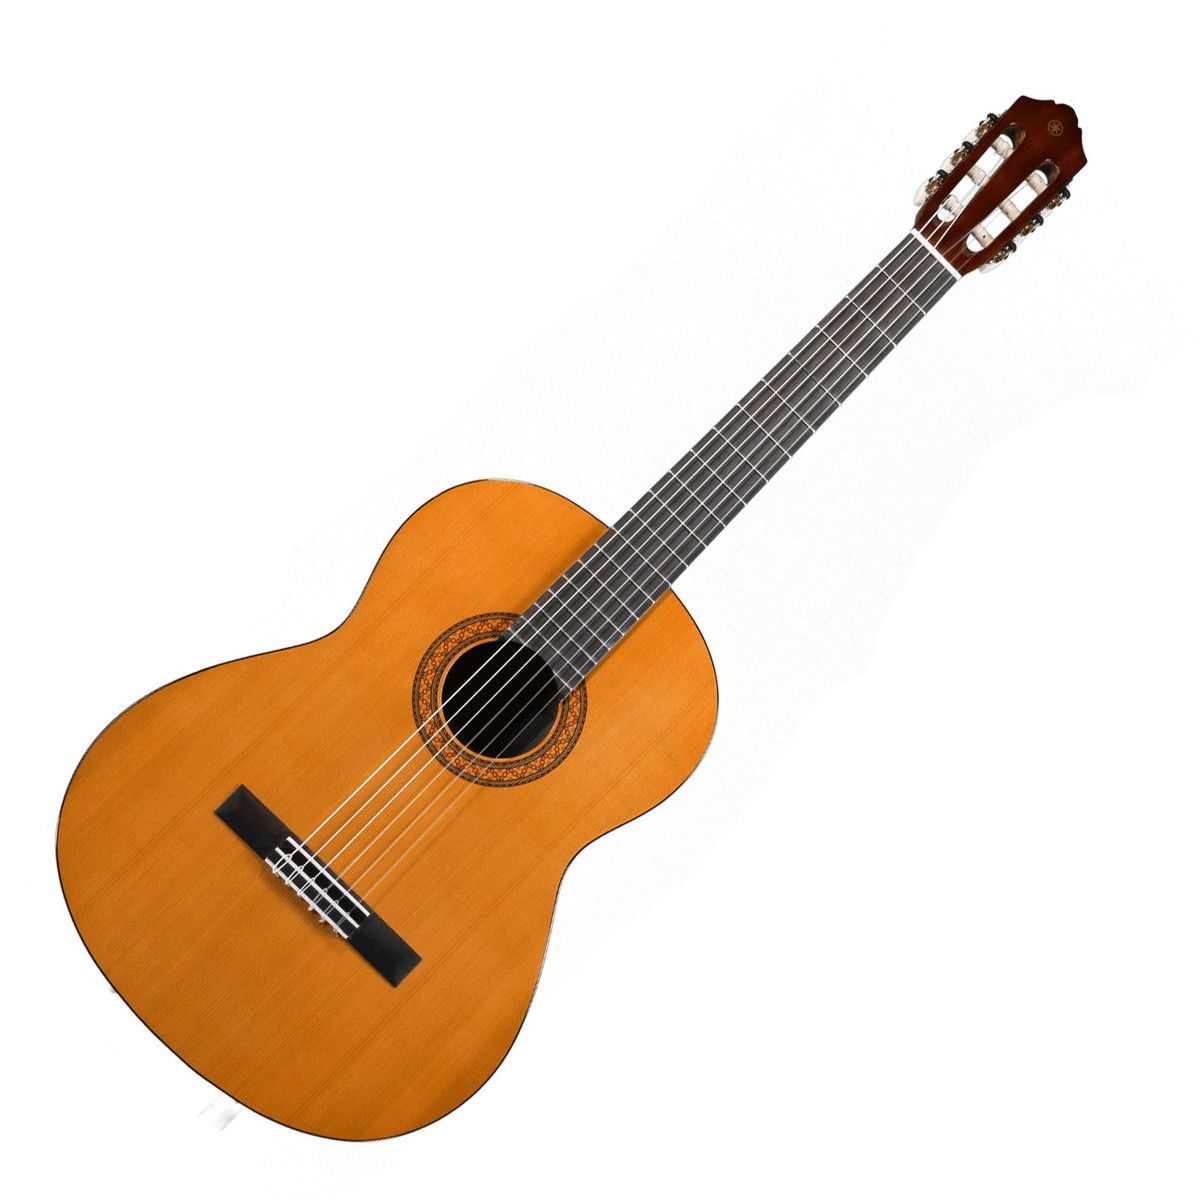 Yamaha C40 Classical Acoustic Guitar Yamaha Guitar Acoustic Guitar Classical Guitars For Sale